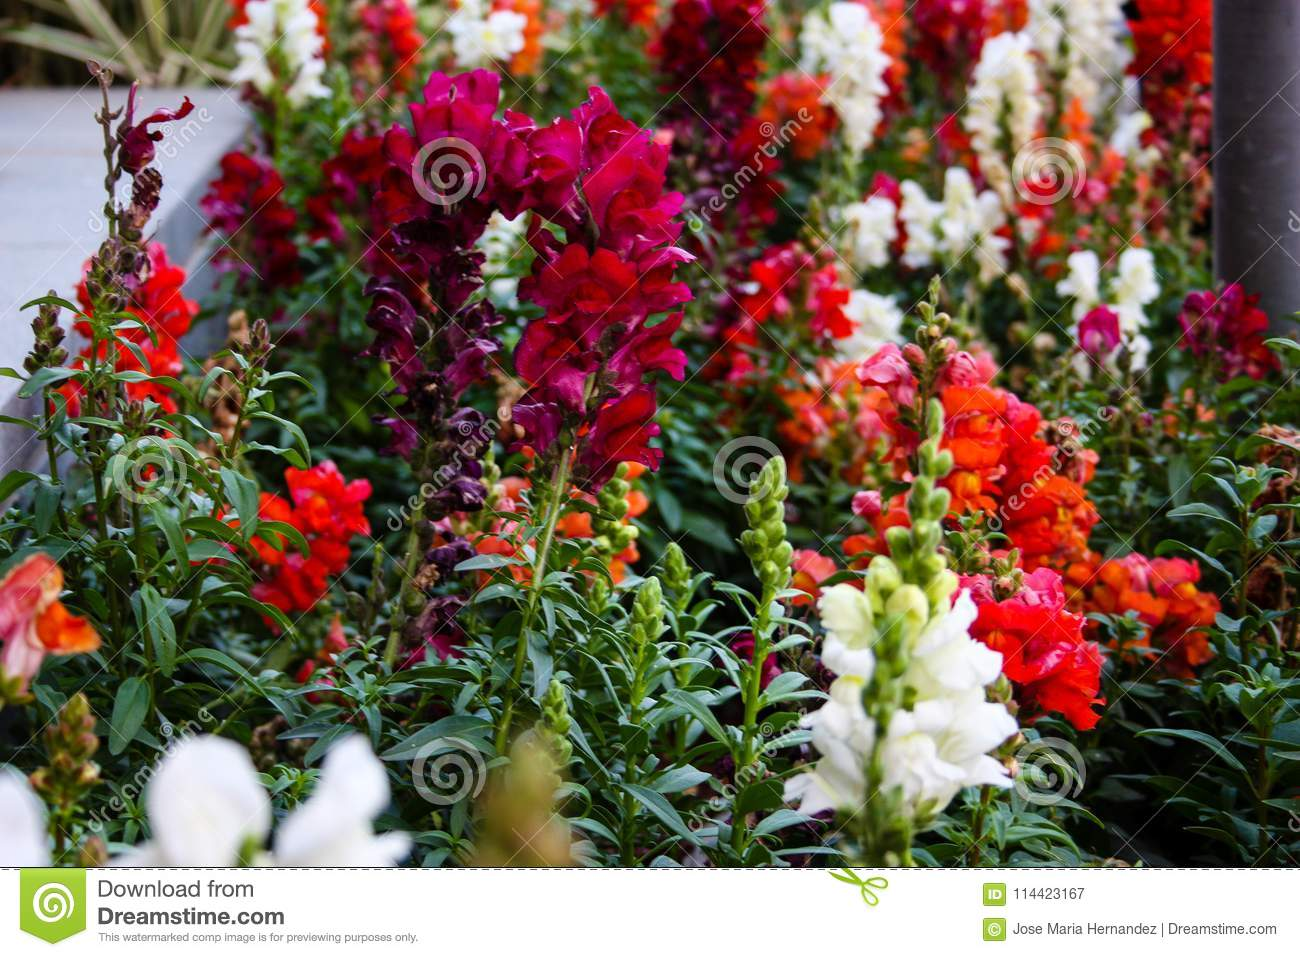 Flowers from Israel stock image. Image of floral, colorful - 114423167